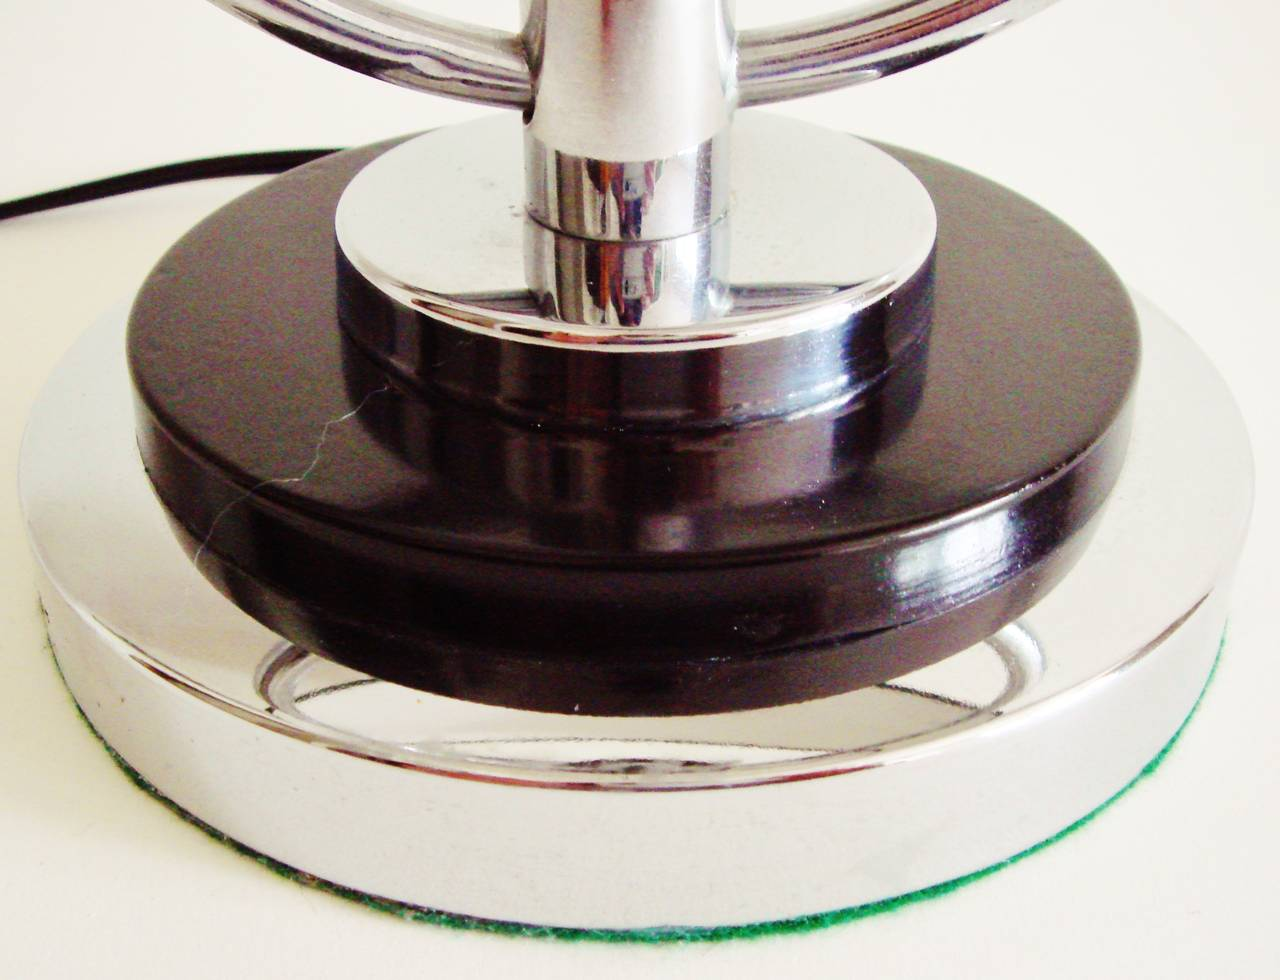 Pair of American Art Deco or Machine Age Chrome and Black Table or Bedside Lamps For Sale 1